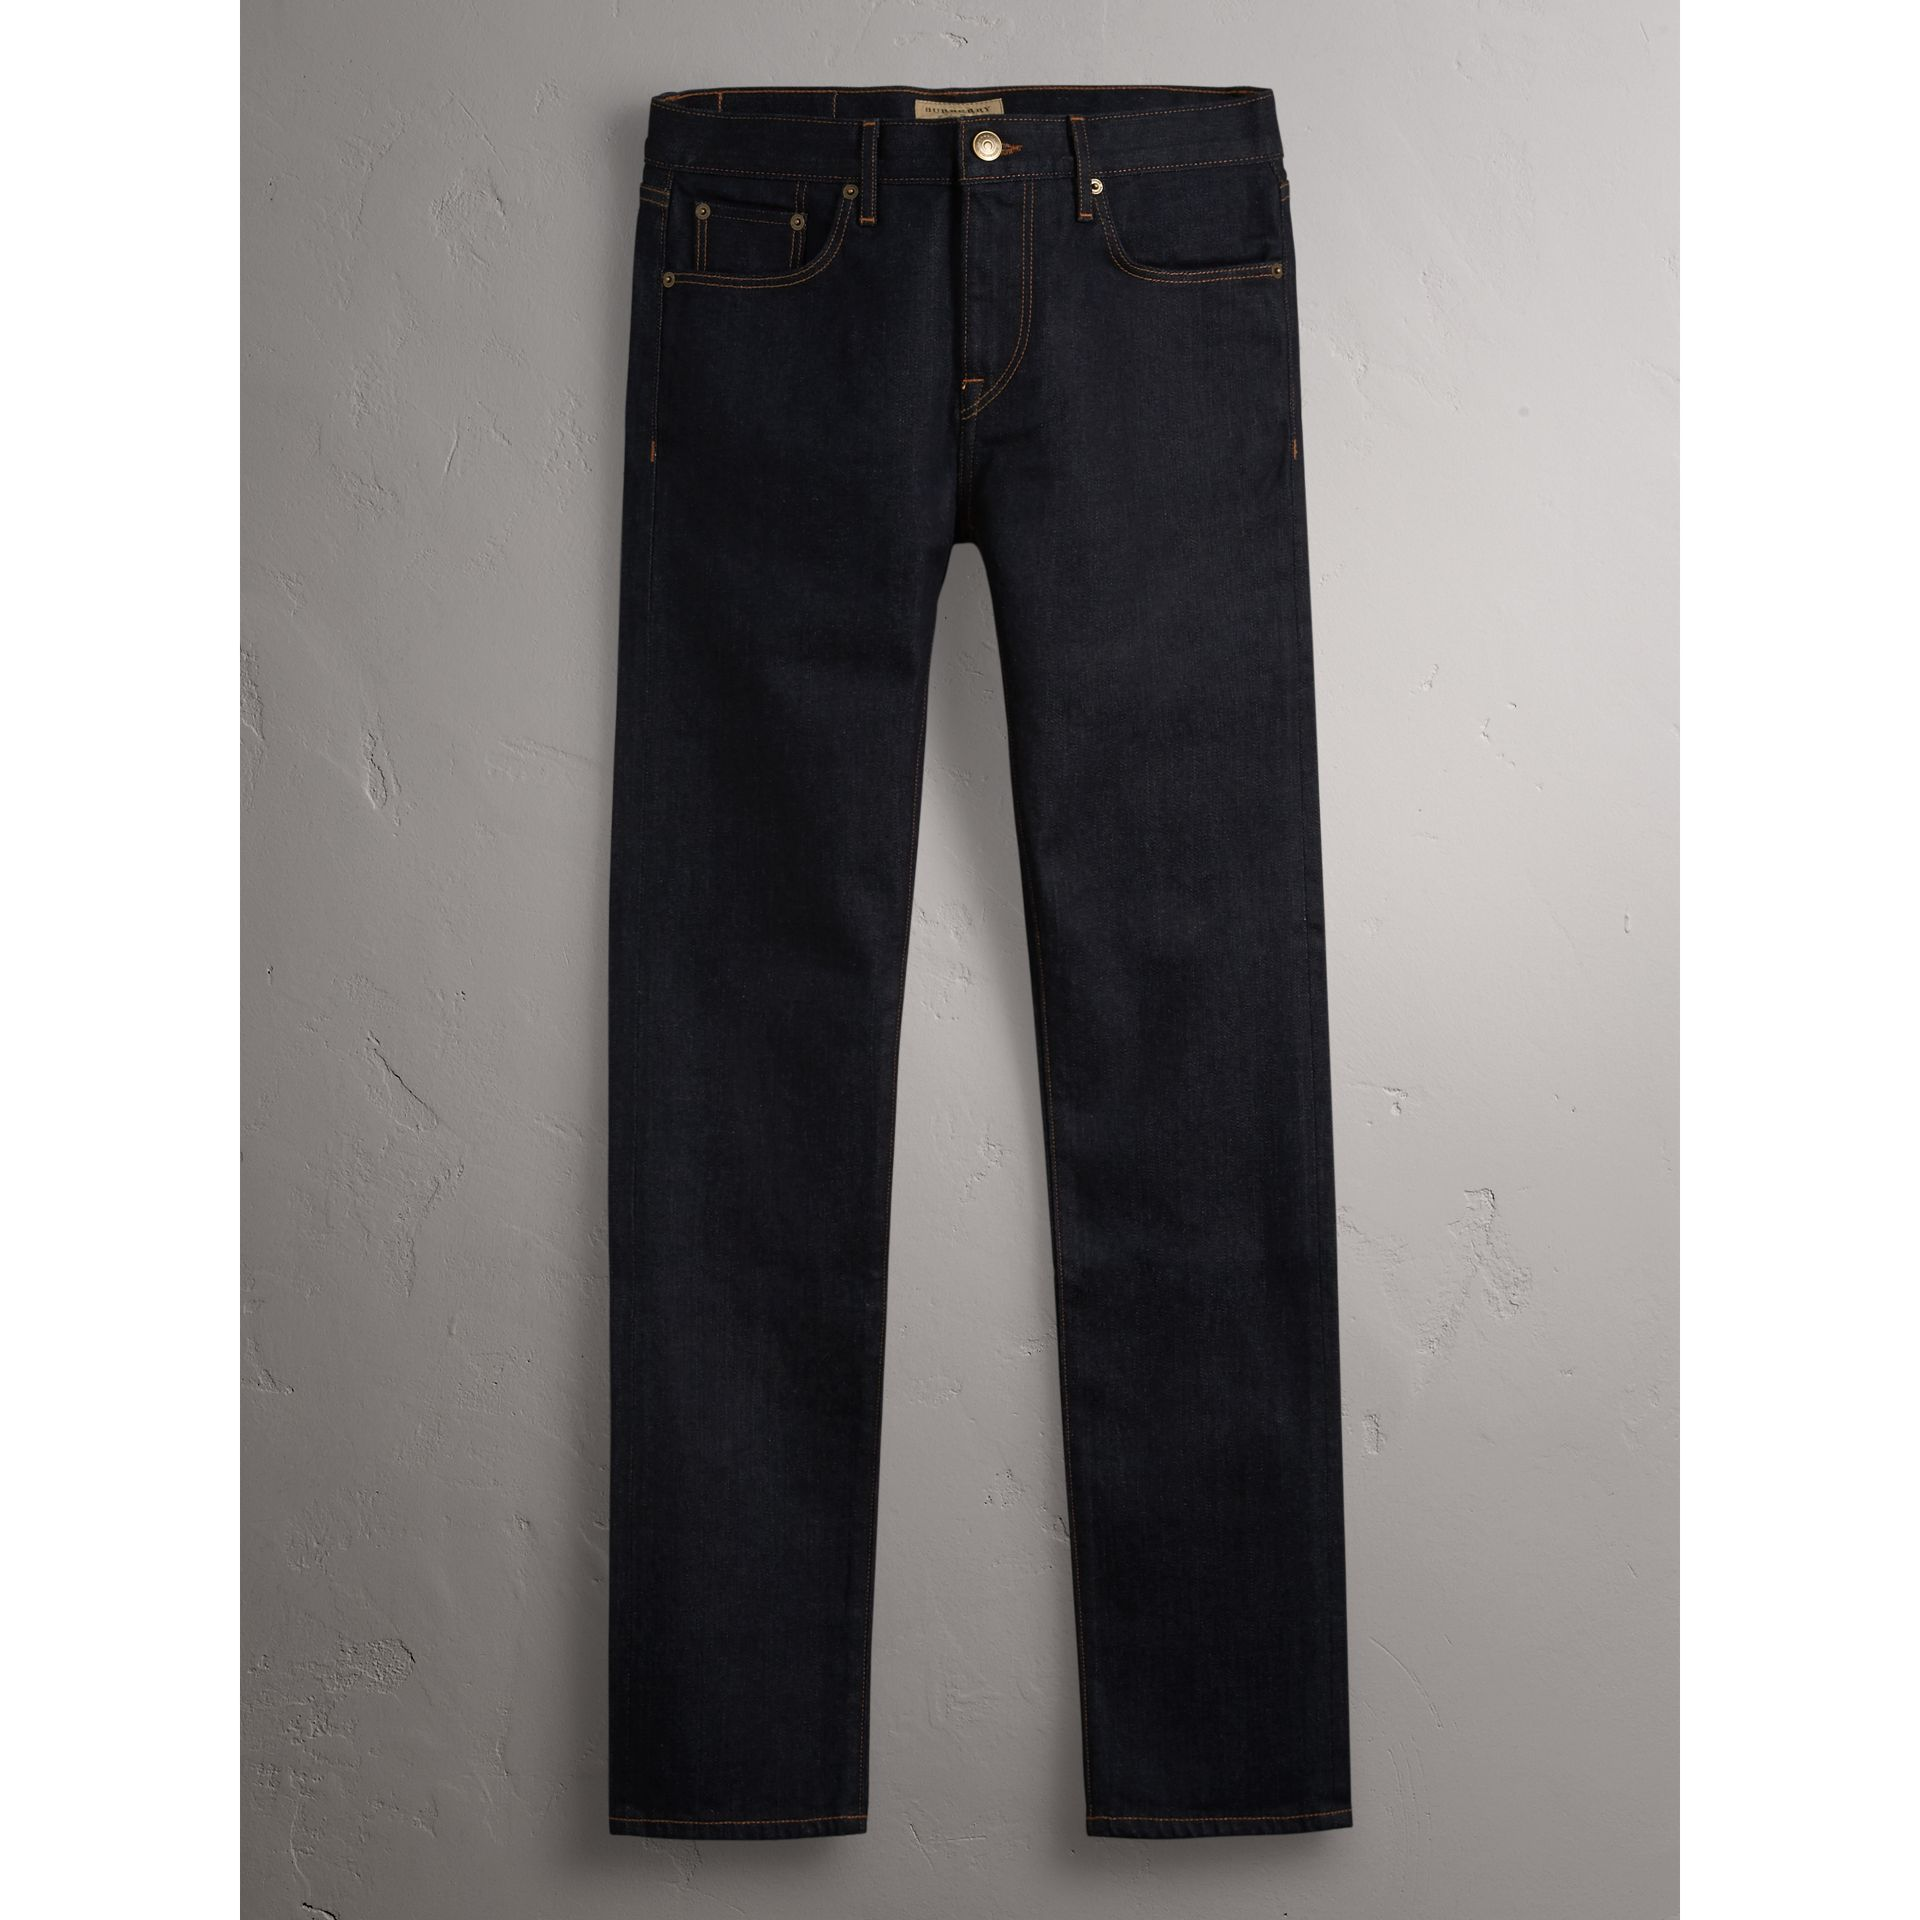 Jean slim en denim selvedge japonais extensible (Indigo Sombre) - Homme | Burberry - photo de la galerie 4